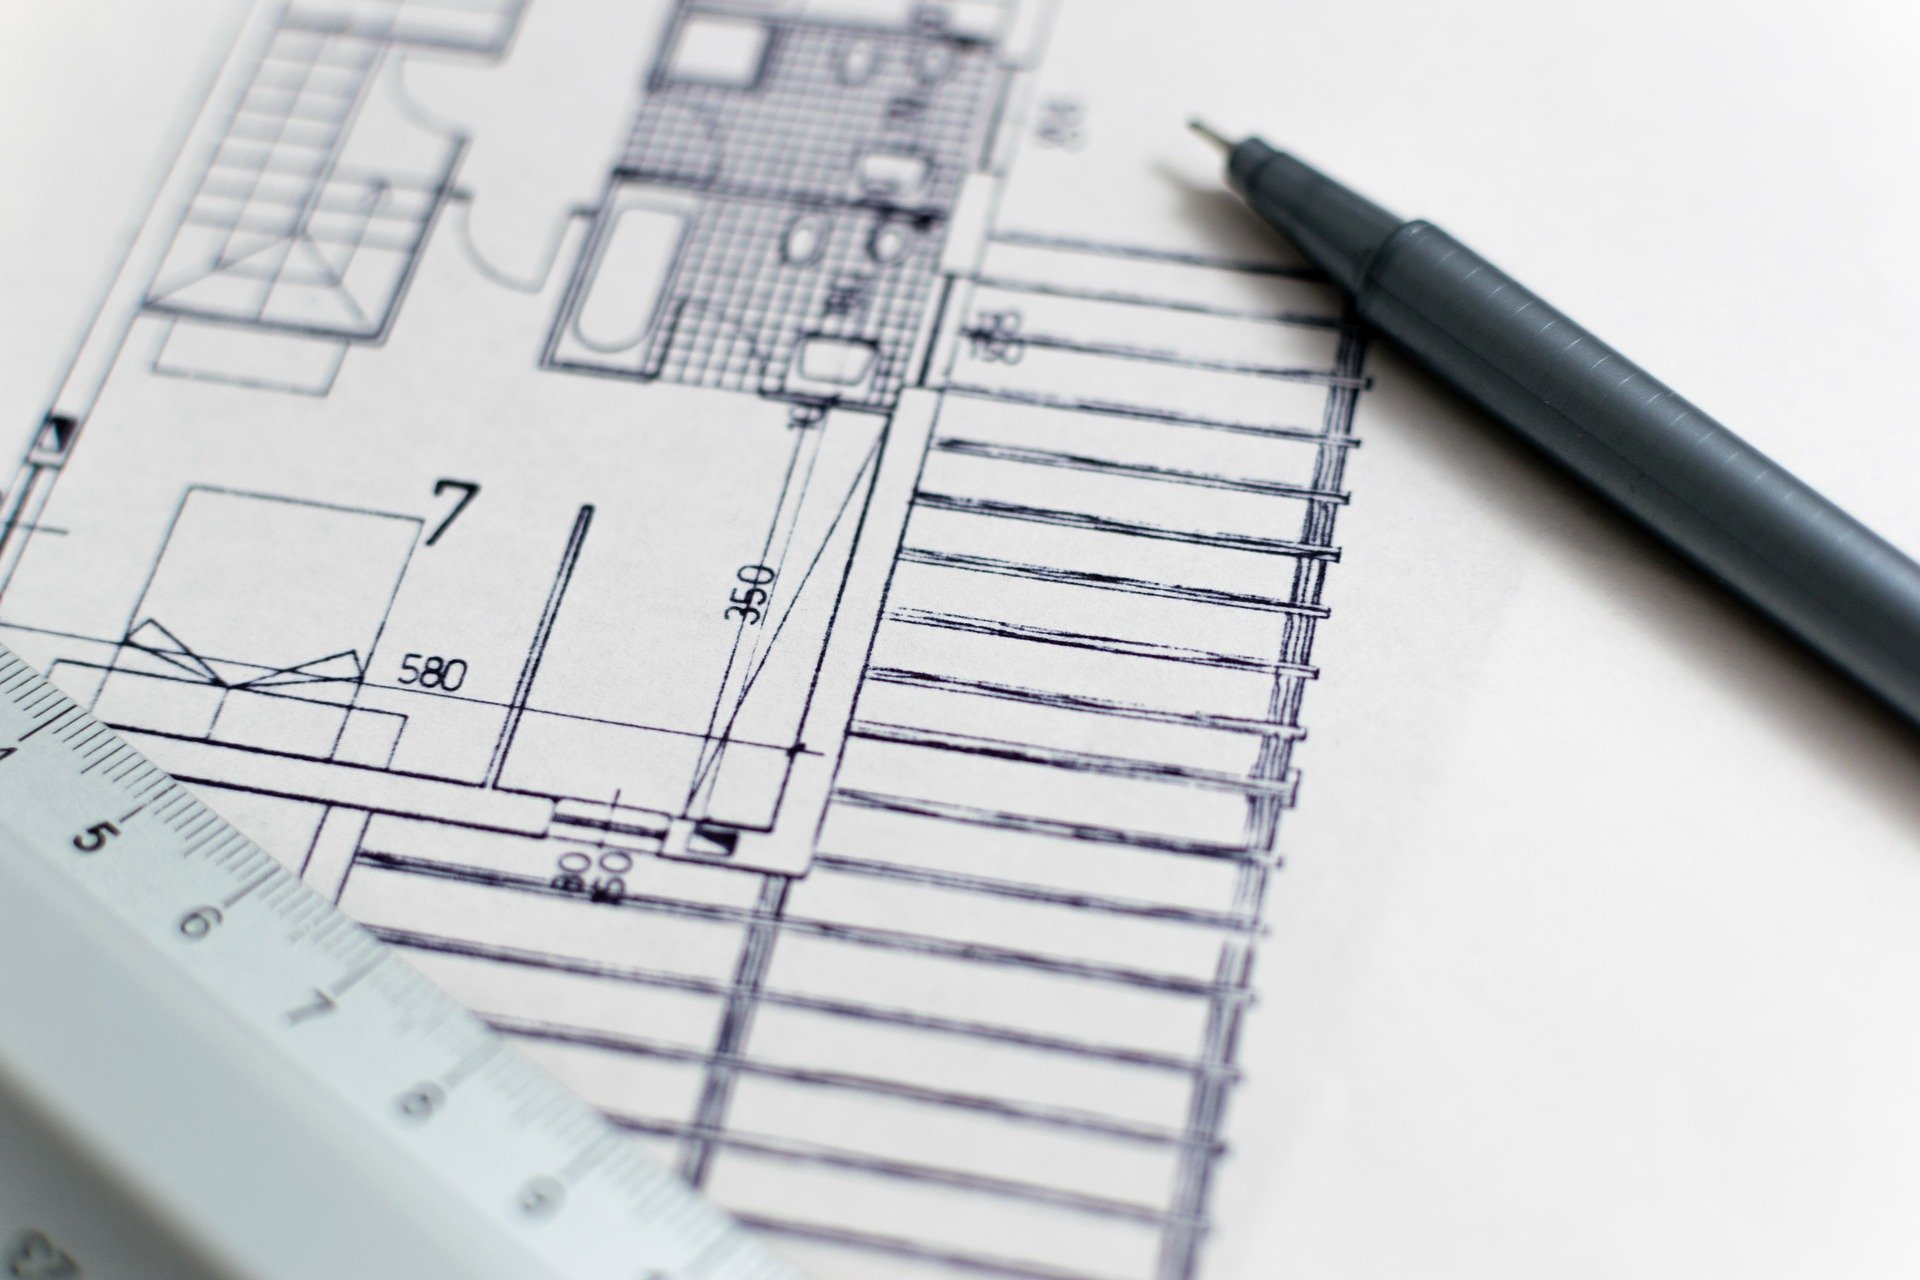 The Cost of Architectural Services